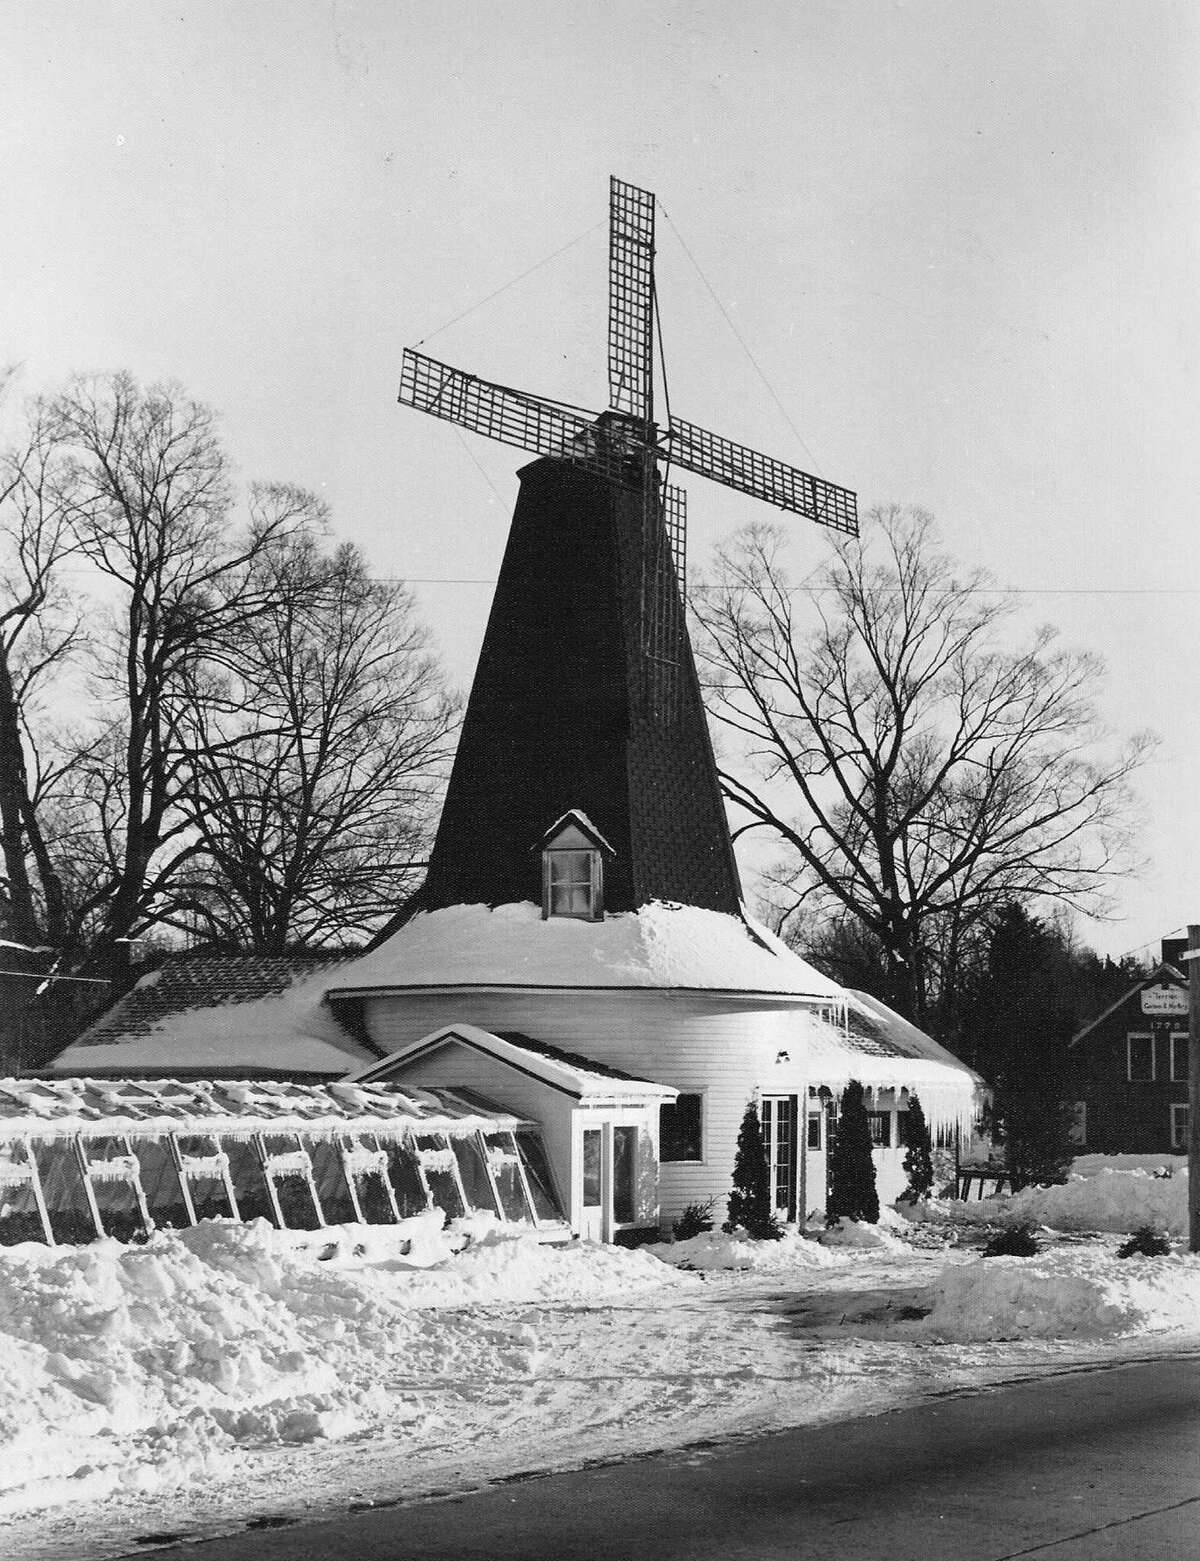 Wallace Ferris owned and operated the Windmill Florist in New Milford along Route 7 around the turn of the 20th century. The photo is from circa 1930. Currently this is the site of the Windmill Diner. Courtesy of theNew Milford Historical Society and Museum